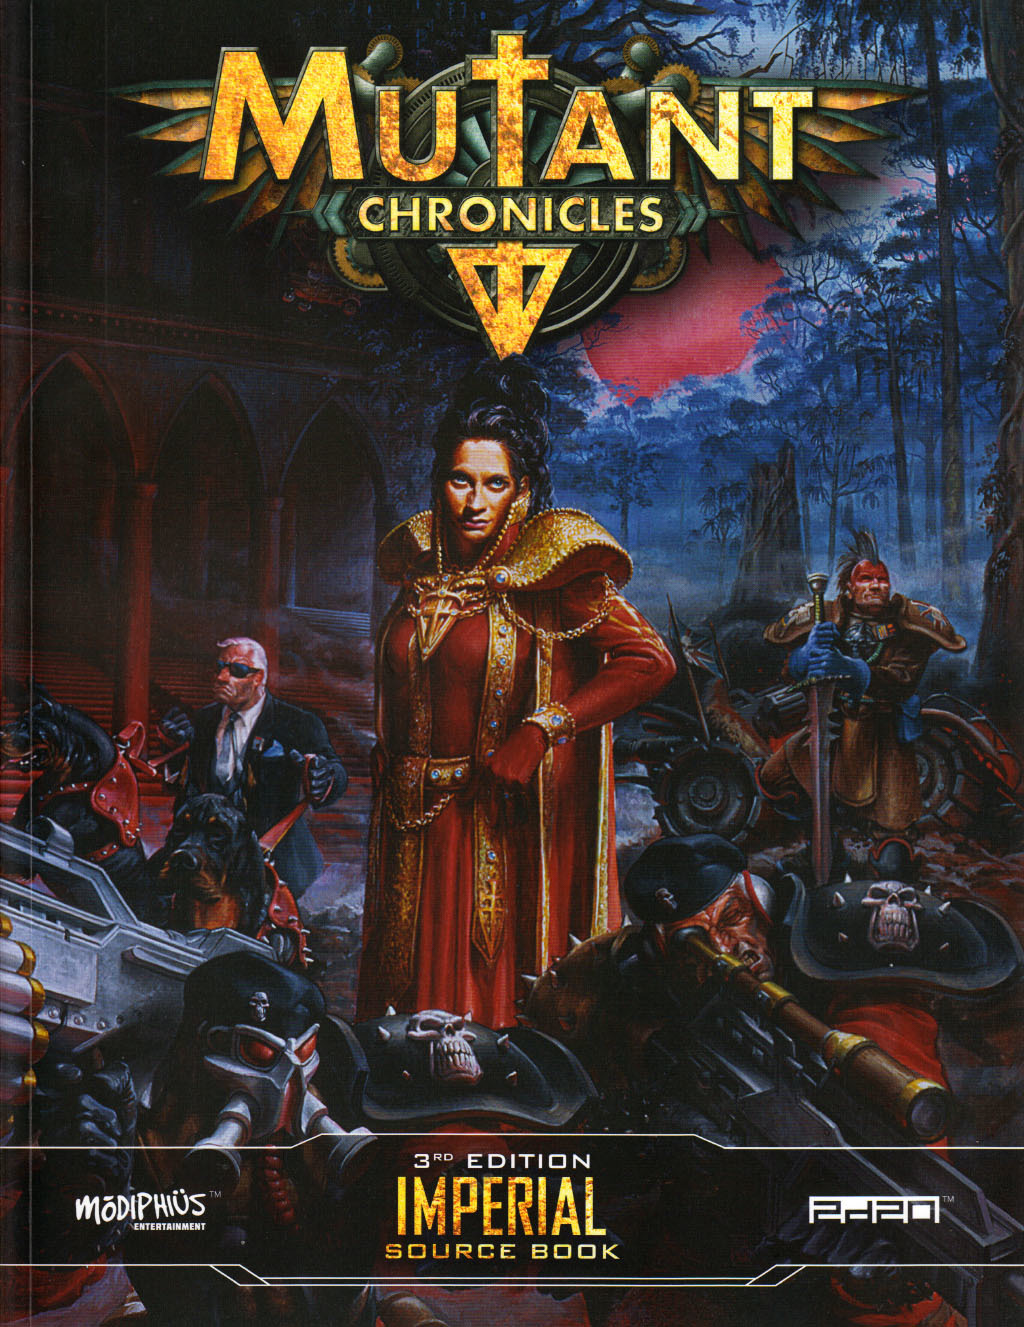 Imperial source book (Mutant Chronicles 3rd edition)